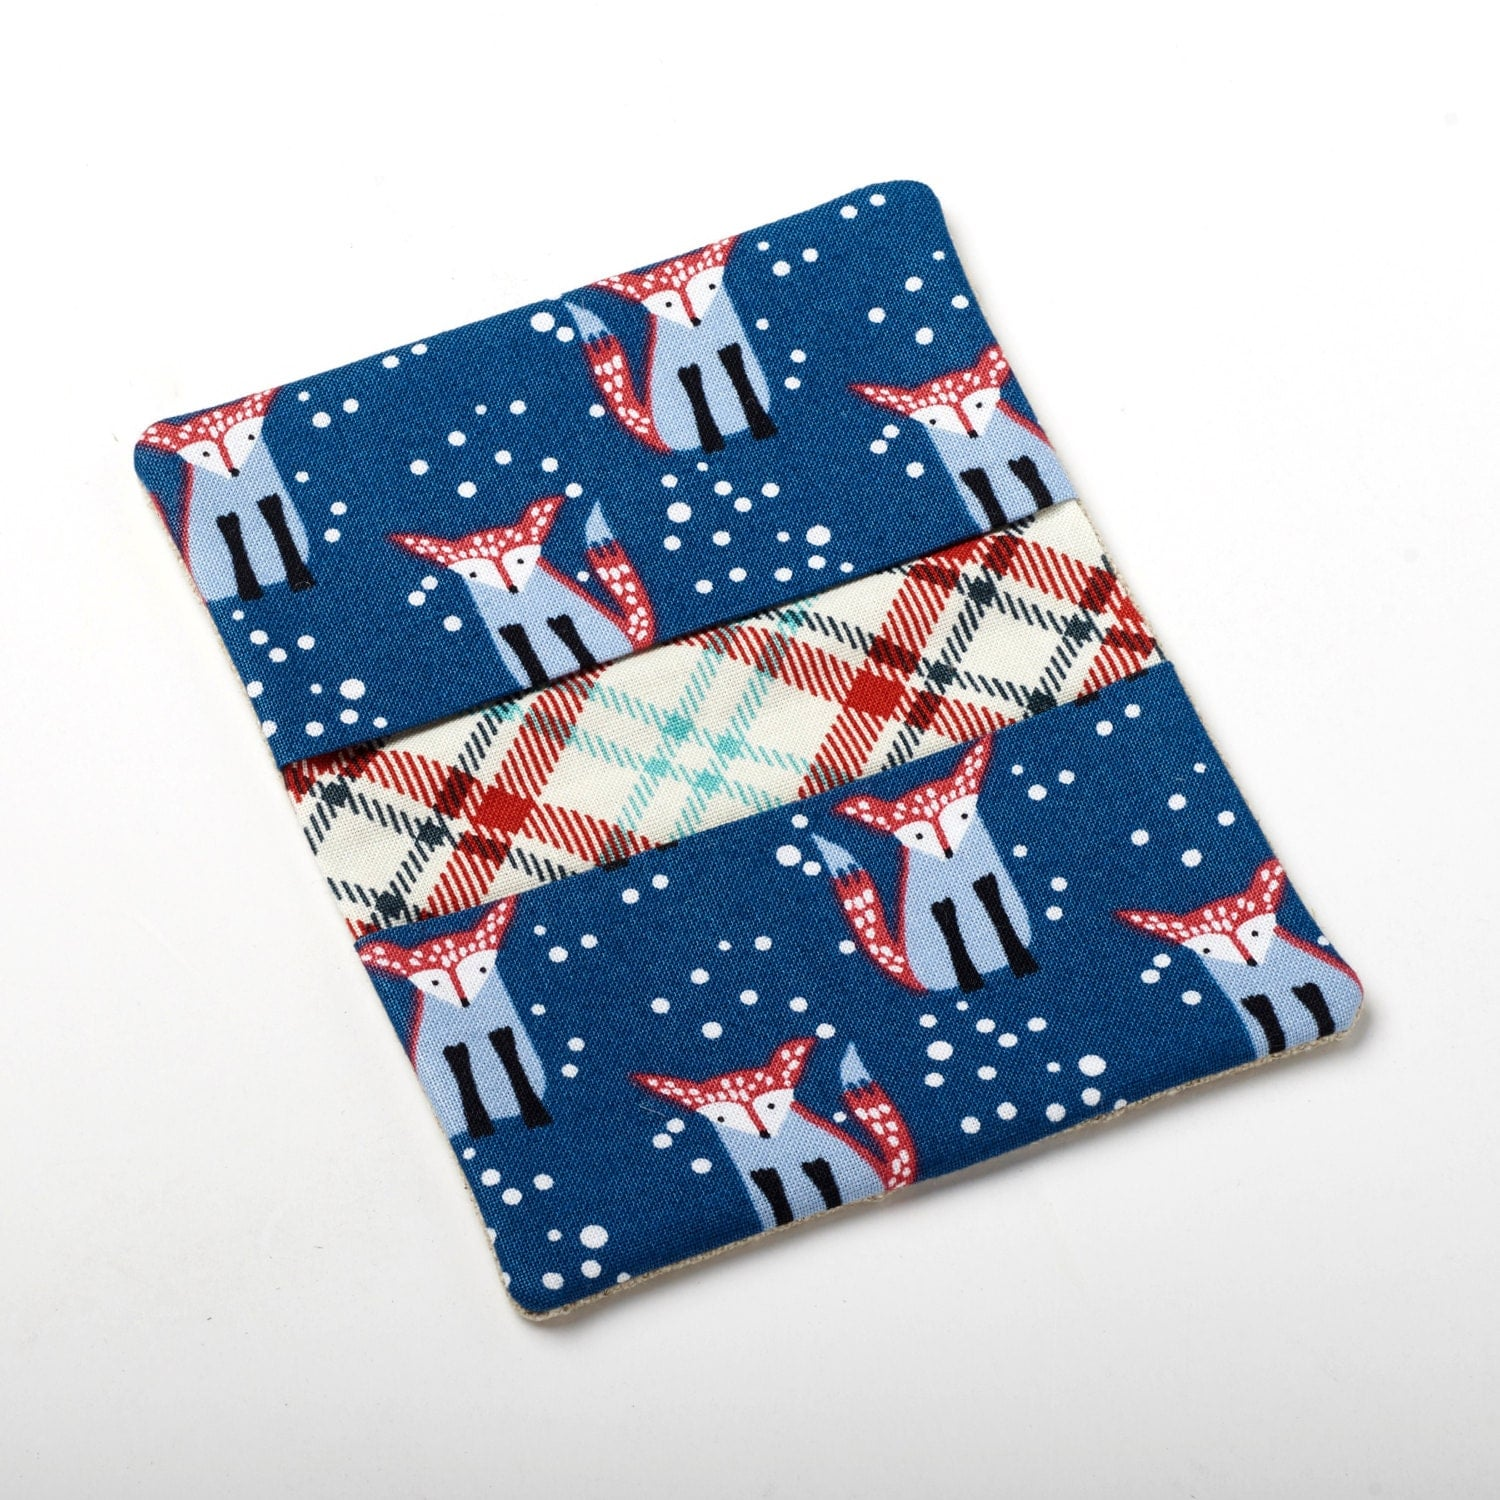 Fox Wallet, Business Card Holder, Small Purse Accessories - Navy ...